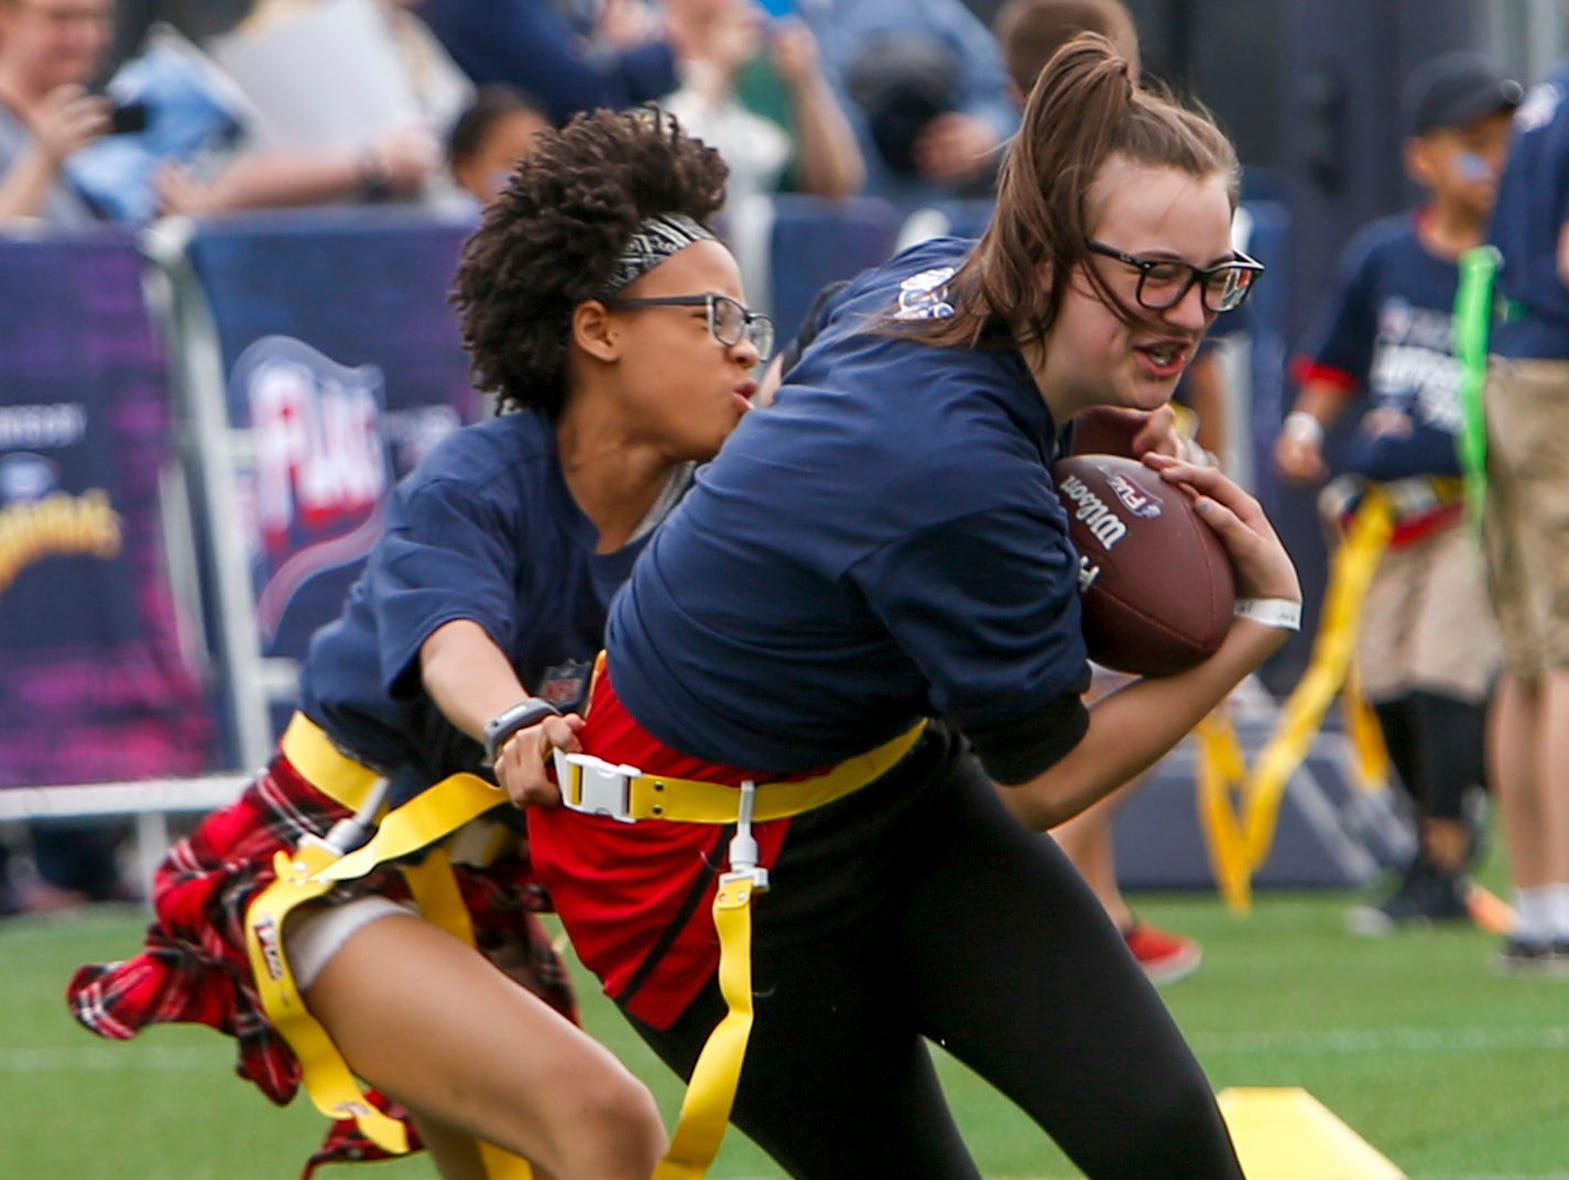 Kids play flag football in a small field during the NFL Draft Experience at Nissan Stadium in Nashville, Tenn., on Thursday, April 25, 2019.